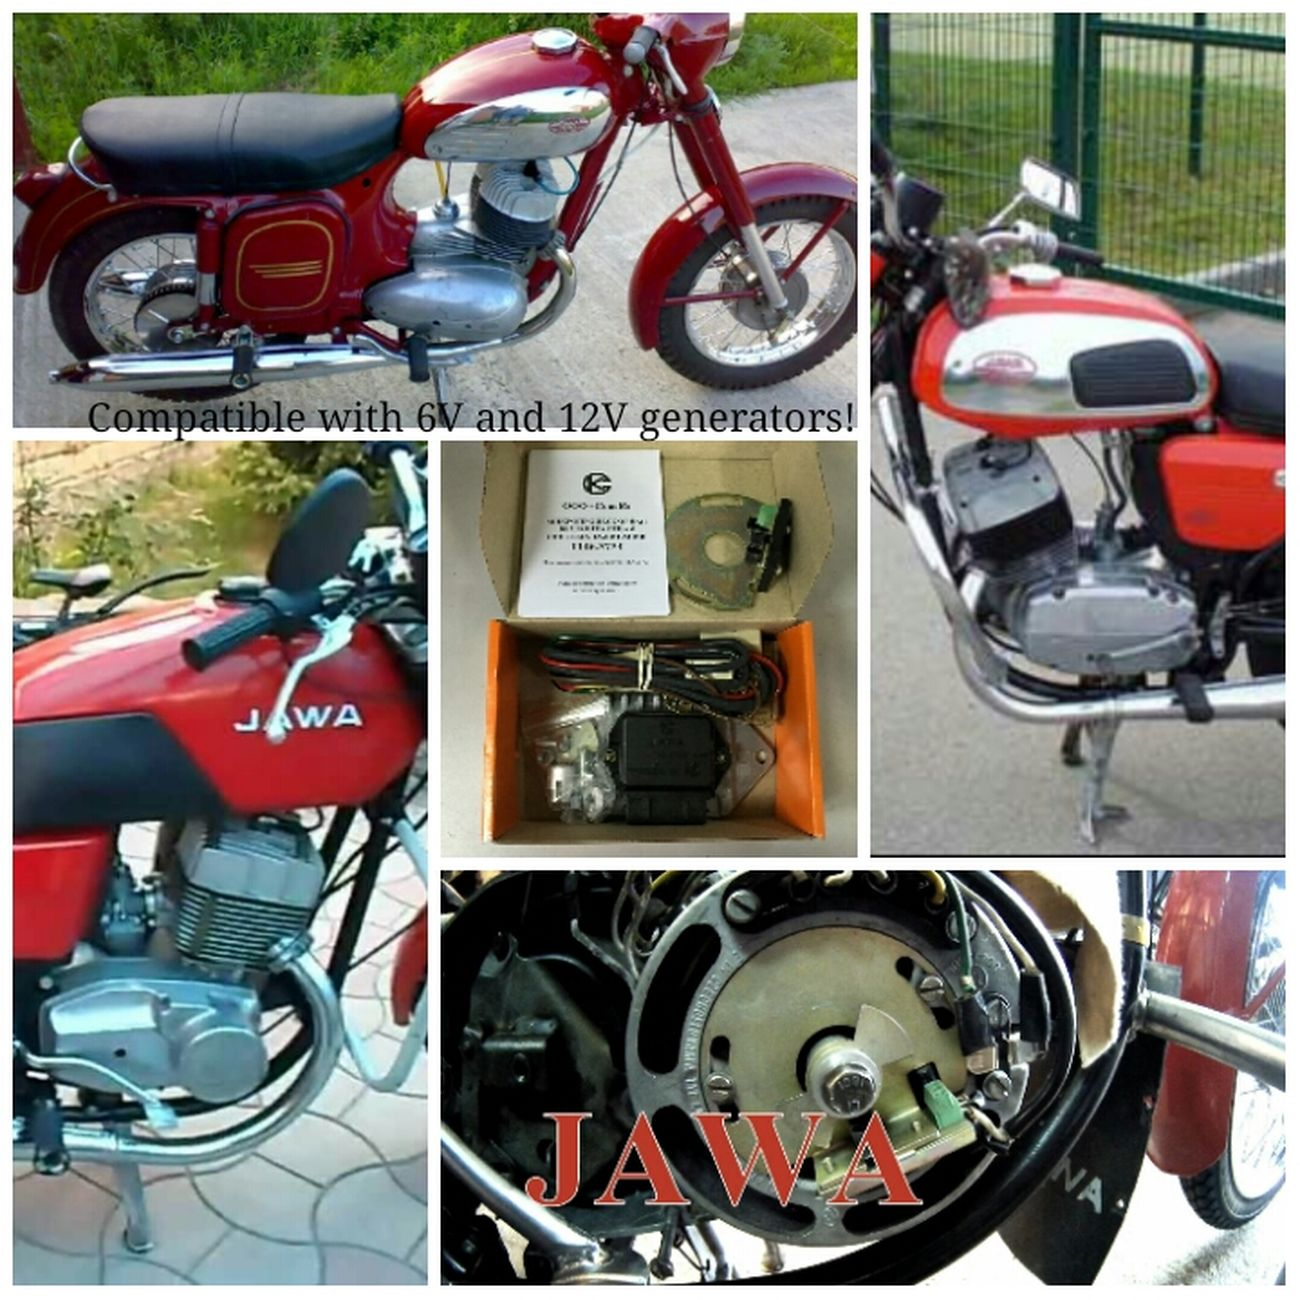 Electronic ignition for motorcycles JAWA 350/638/634 And old version. Price 150€ sergey_kosovsky@yahoo. ComFirst Eyeem Photo просто фото Jawa Jawa Motorcycle Jawa Motorcycles Jawa 350 634 Jawa 350 648 Jawa Old Jawa Moto Electronic Ignition For Sale Sale